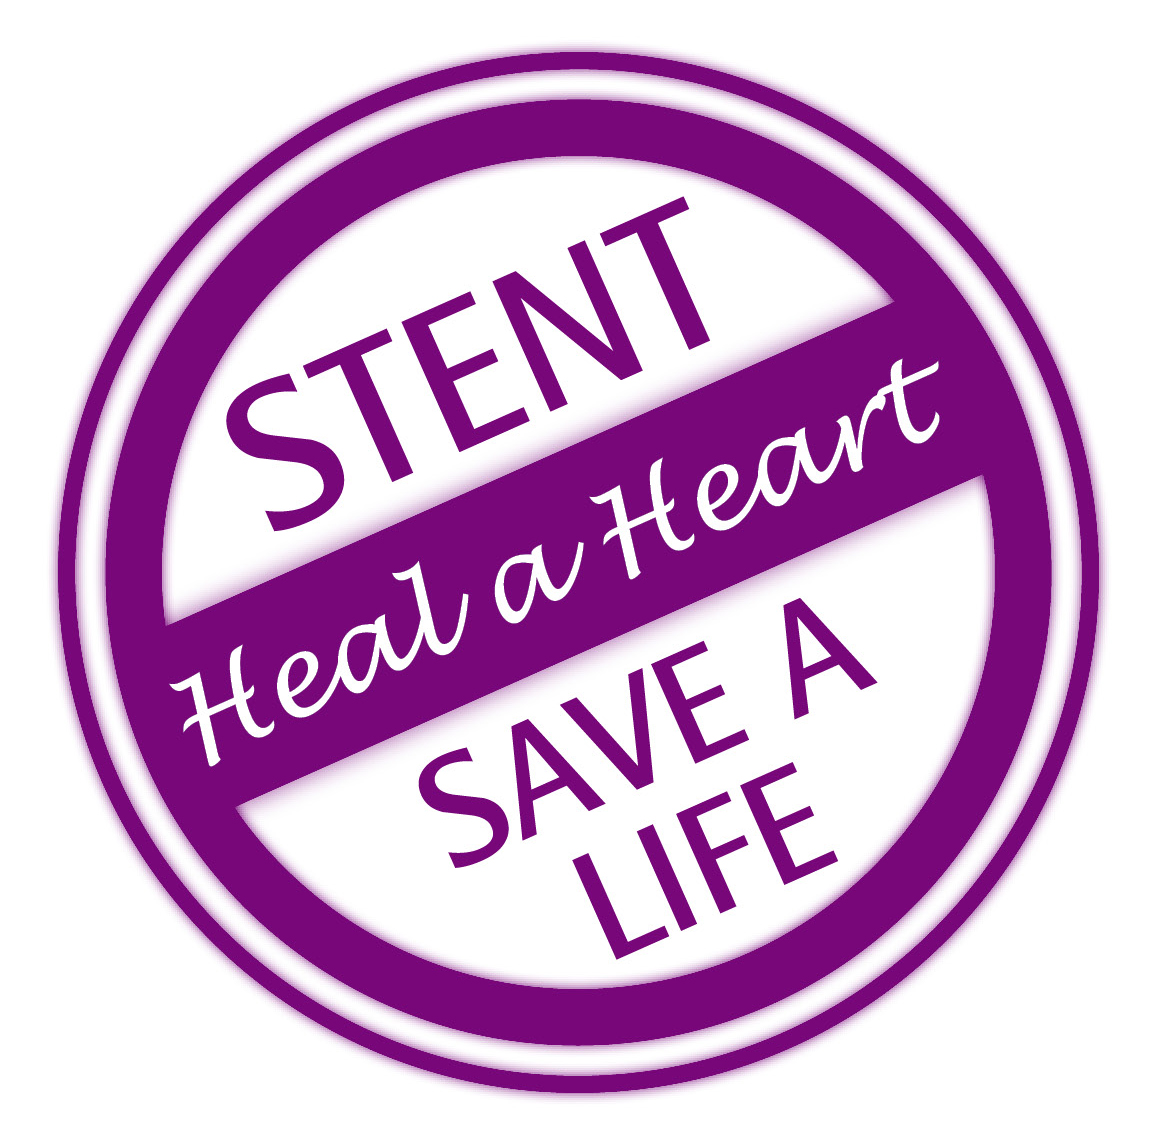 Stent Save a Life